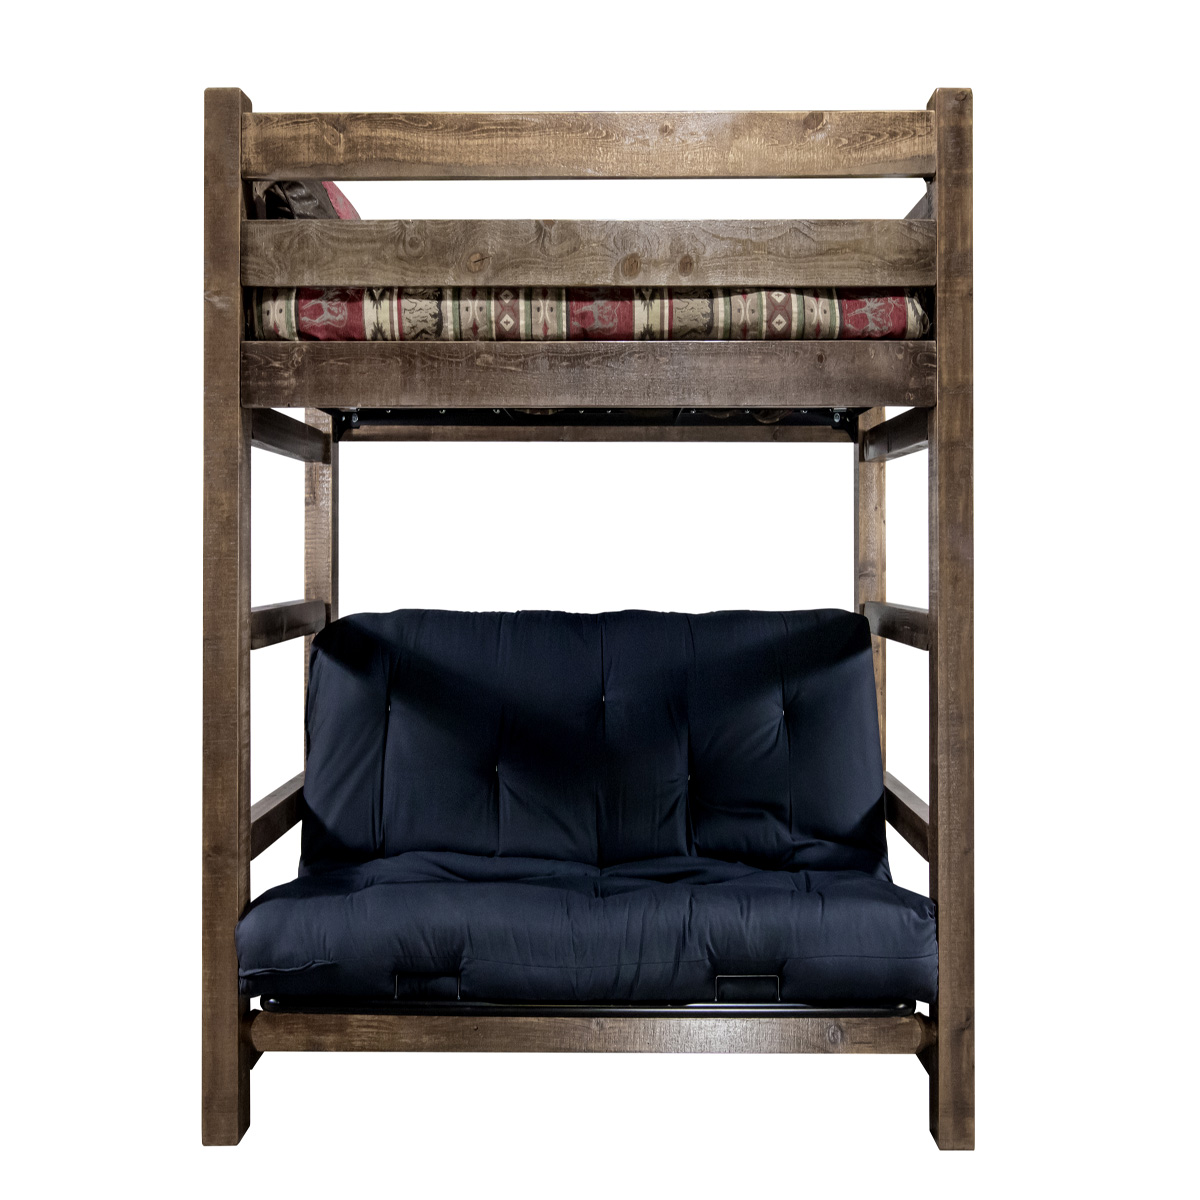 Black Forest Decor White bluff bunk bed - twin over full ...